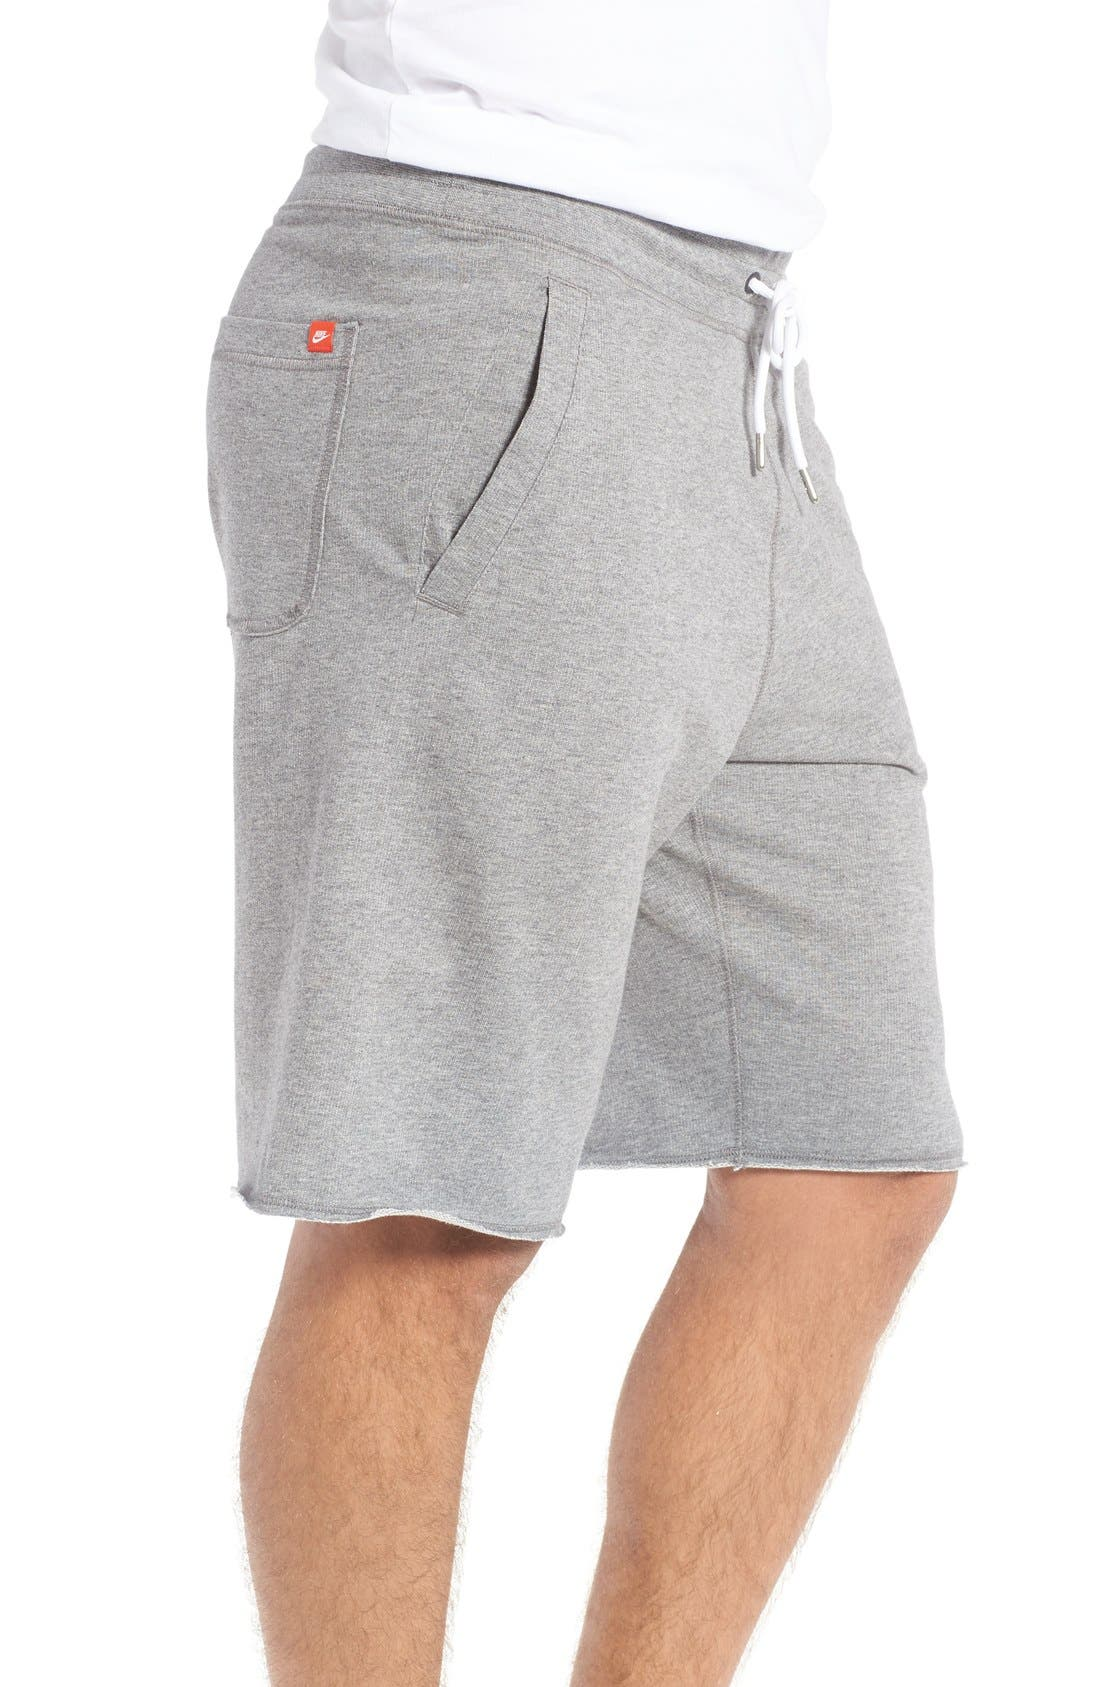 'NSW' Logo French Terry Shorts,                             Alternate thumbnail 4, color,                             CARBON HEATHER/ WHITE